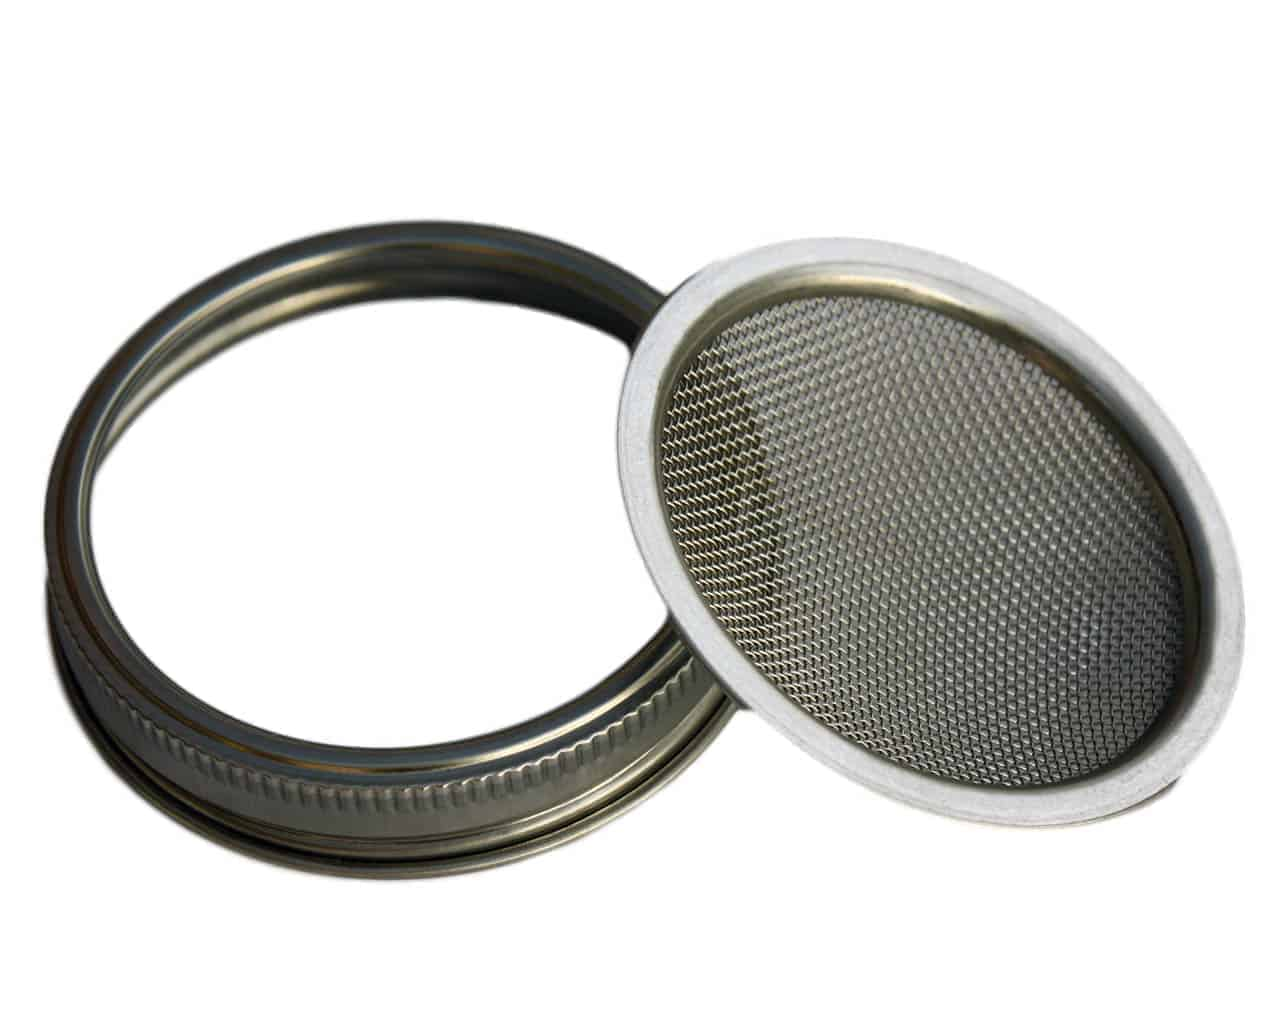 Stainless Steel Mesh Sprouting Lid And Band For Wide Mouth